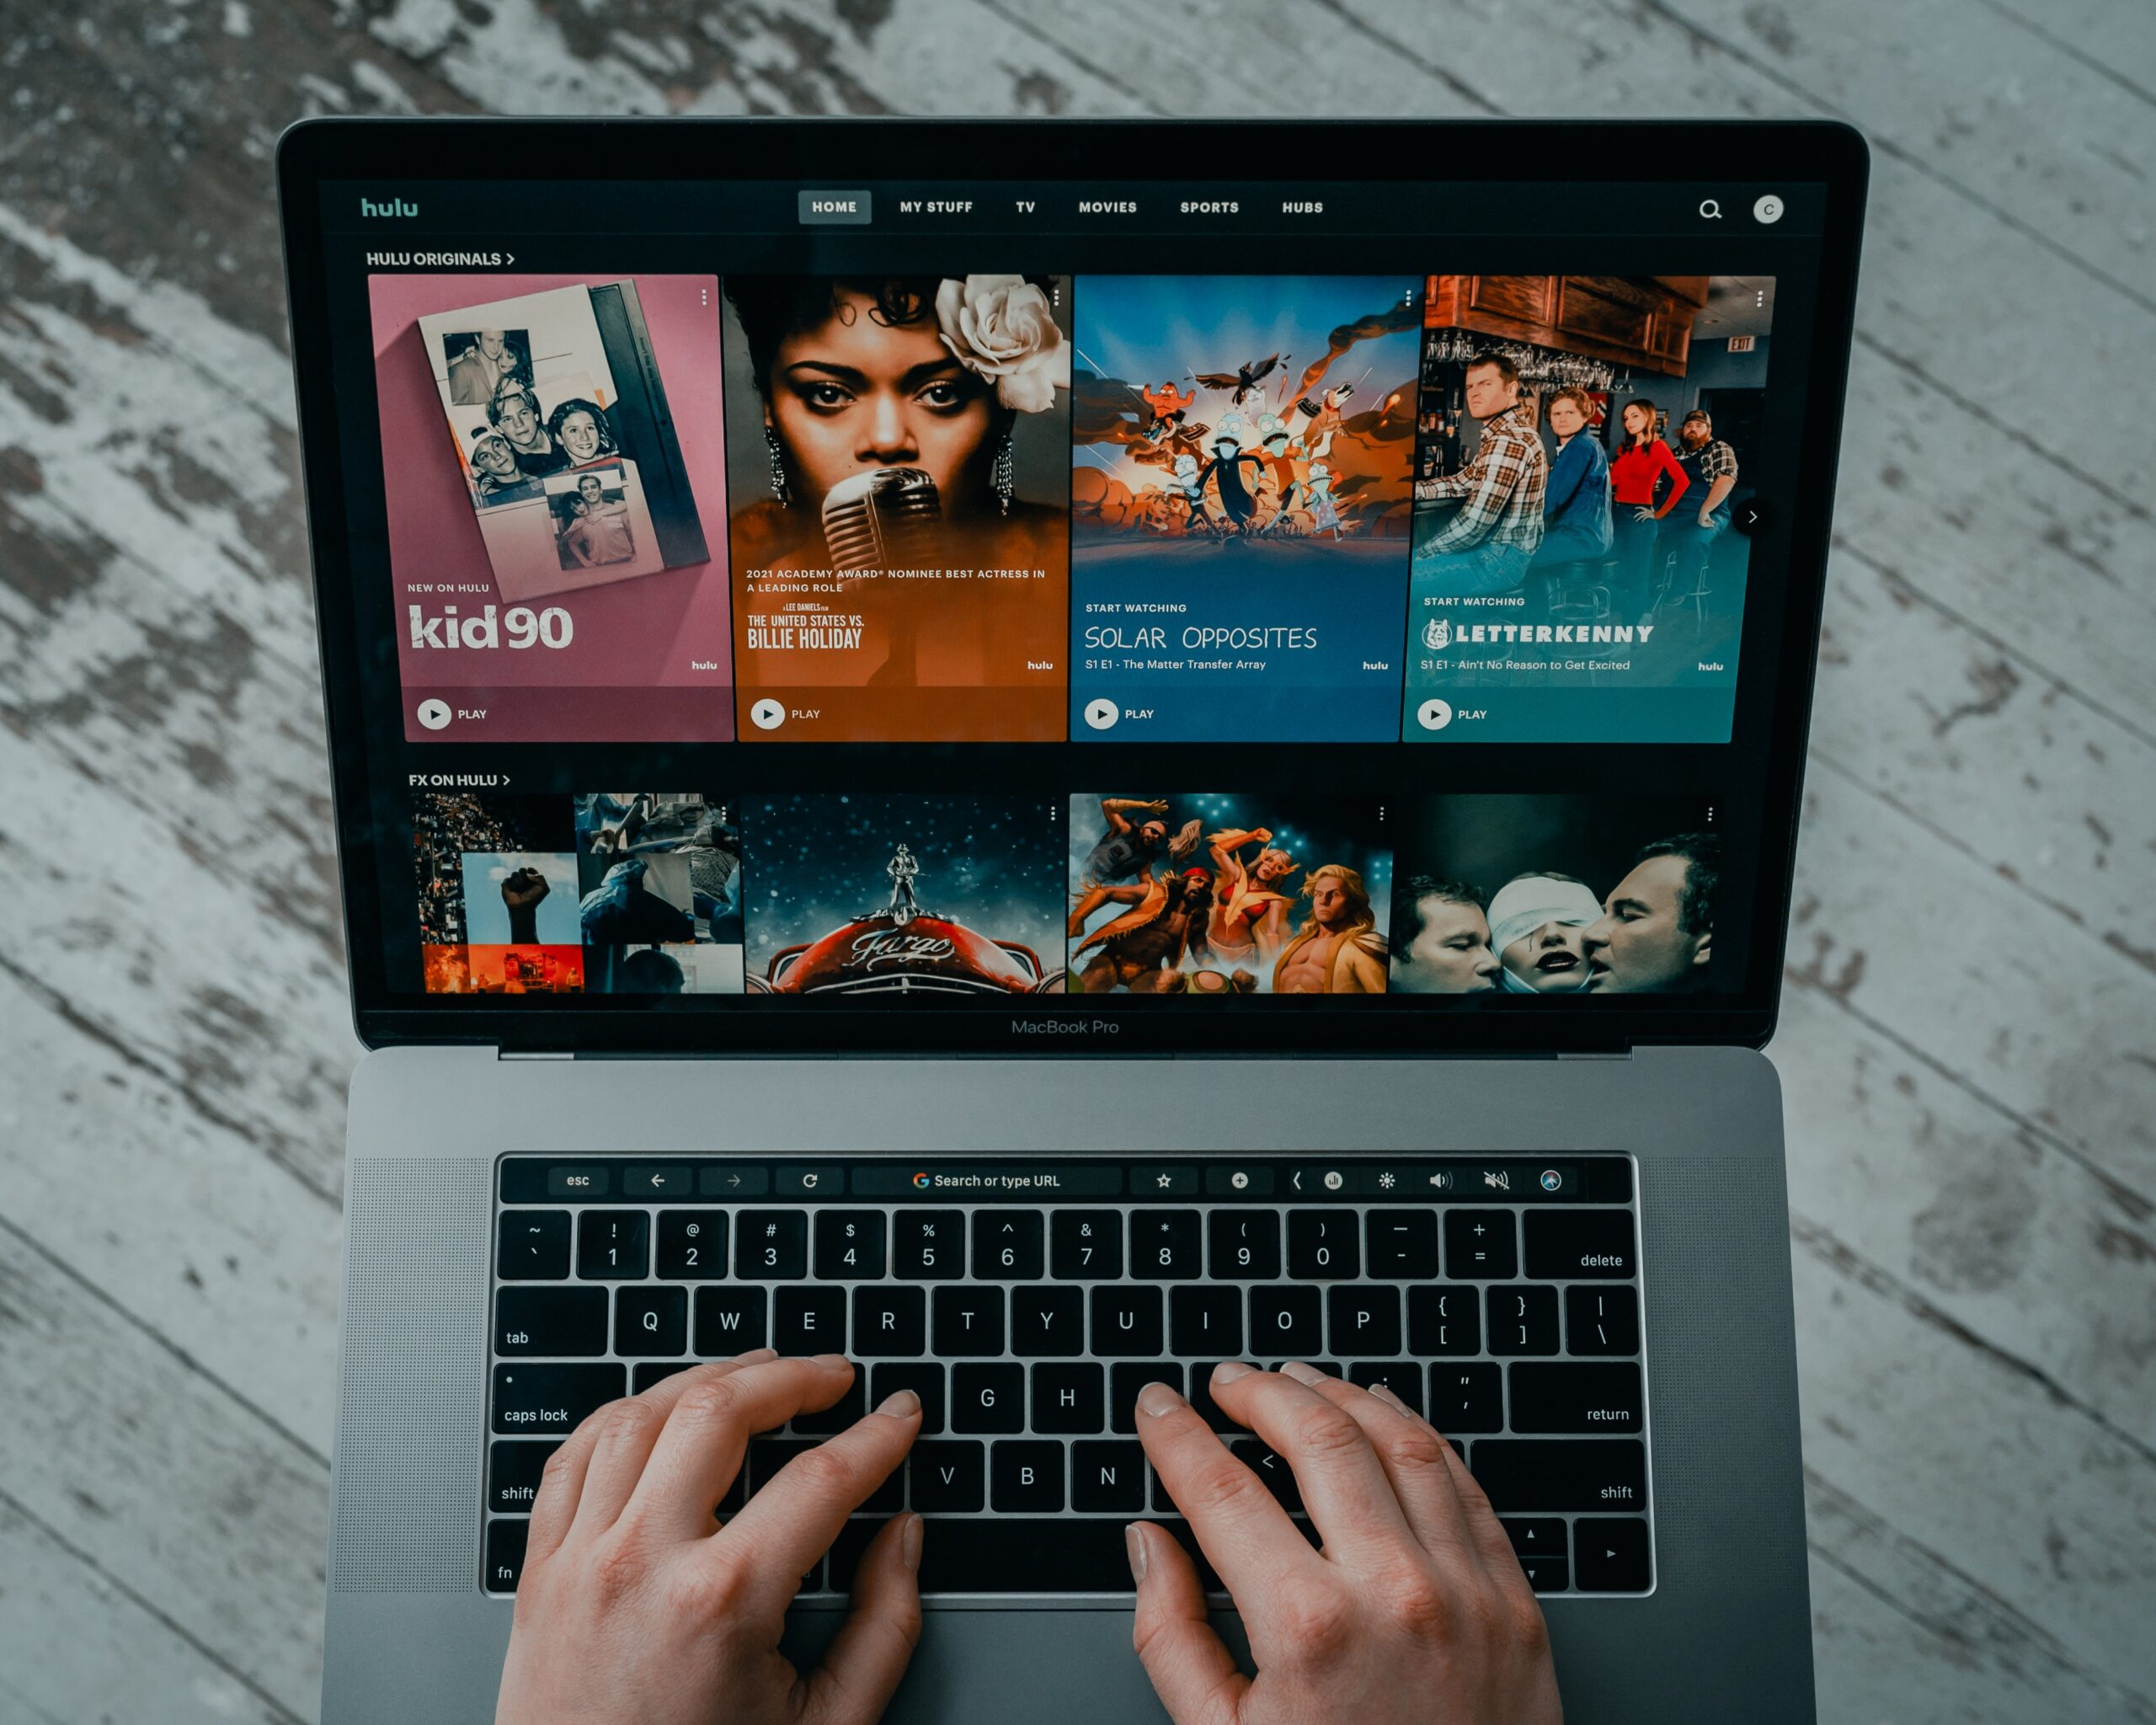 Shot from overhead, a man's hand type on a keyboard as Hulu's video catalogue appear on the screen.